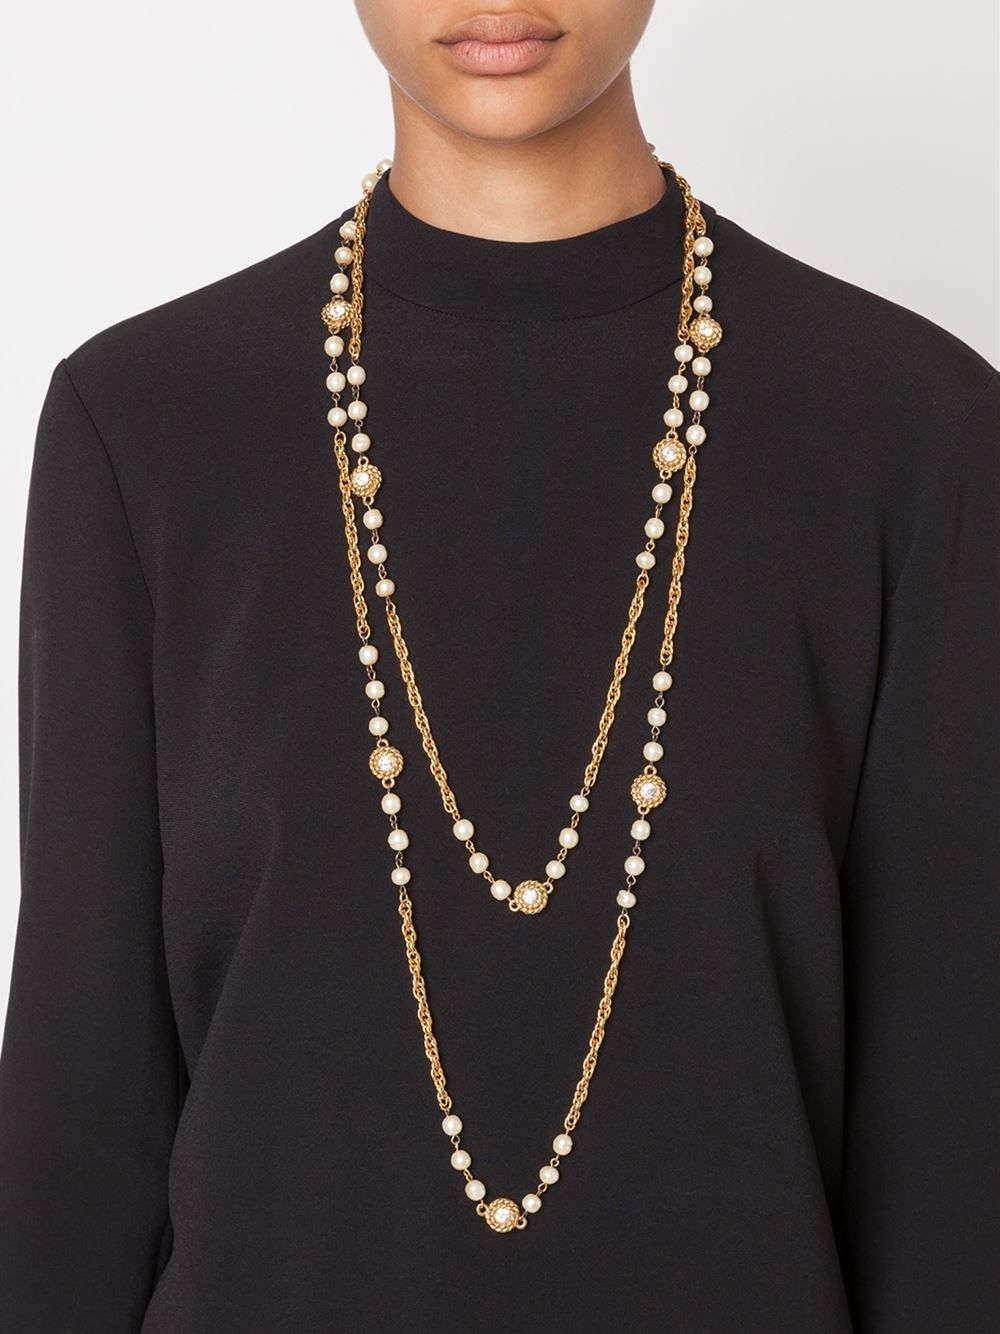 Chanel Vintage Pearls Embellished Chain Necklace